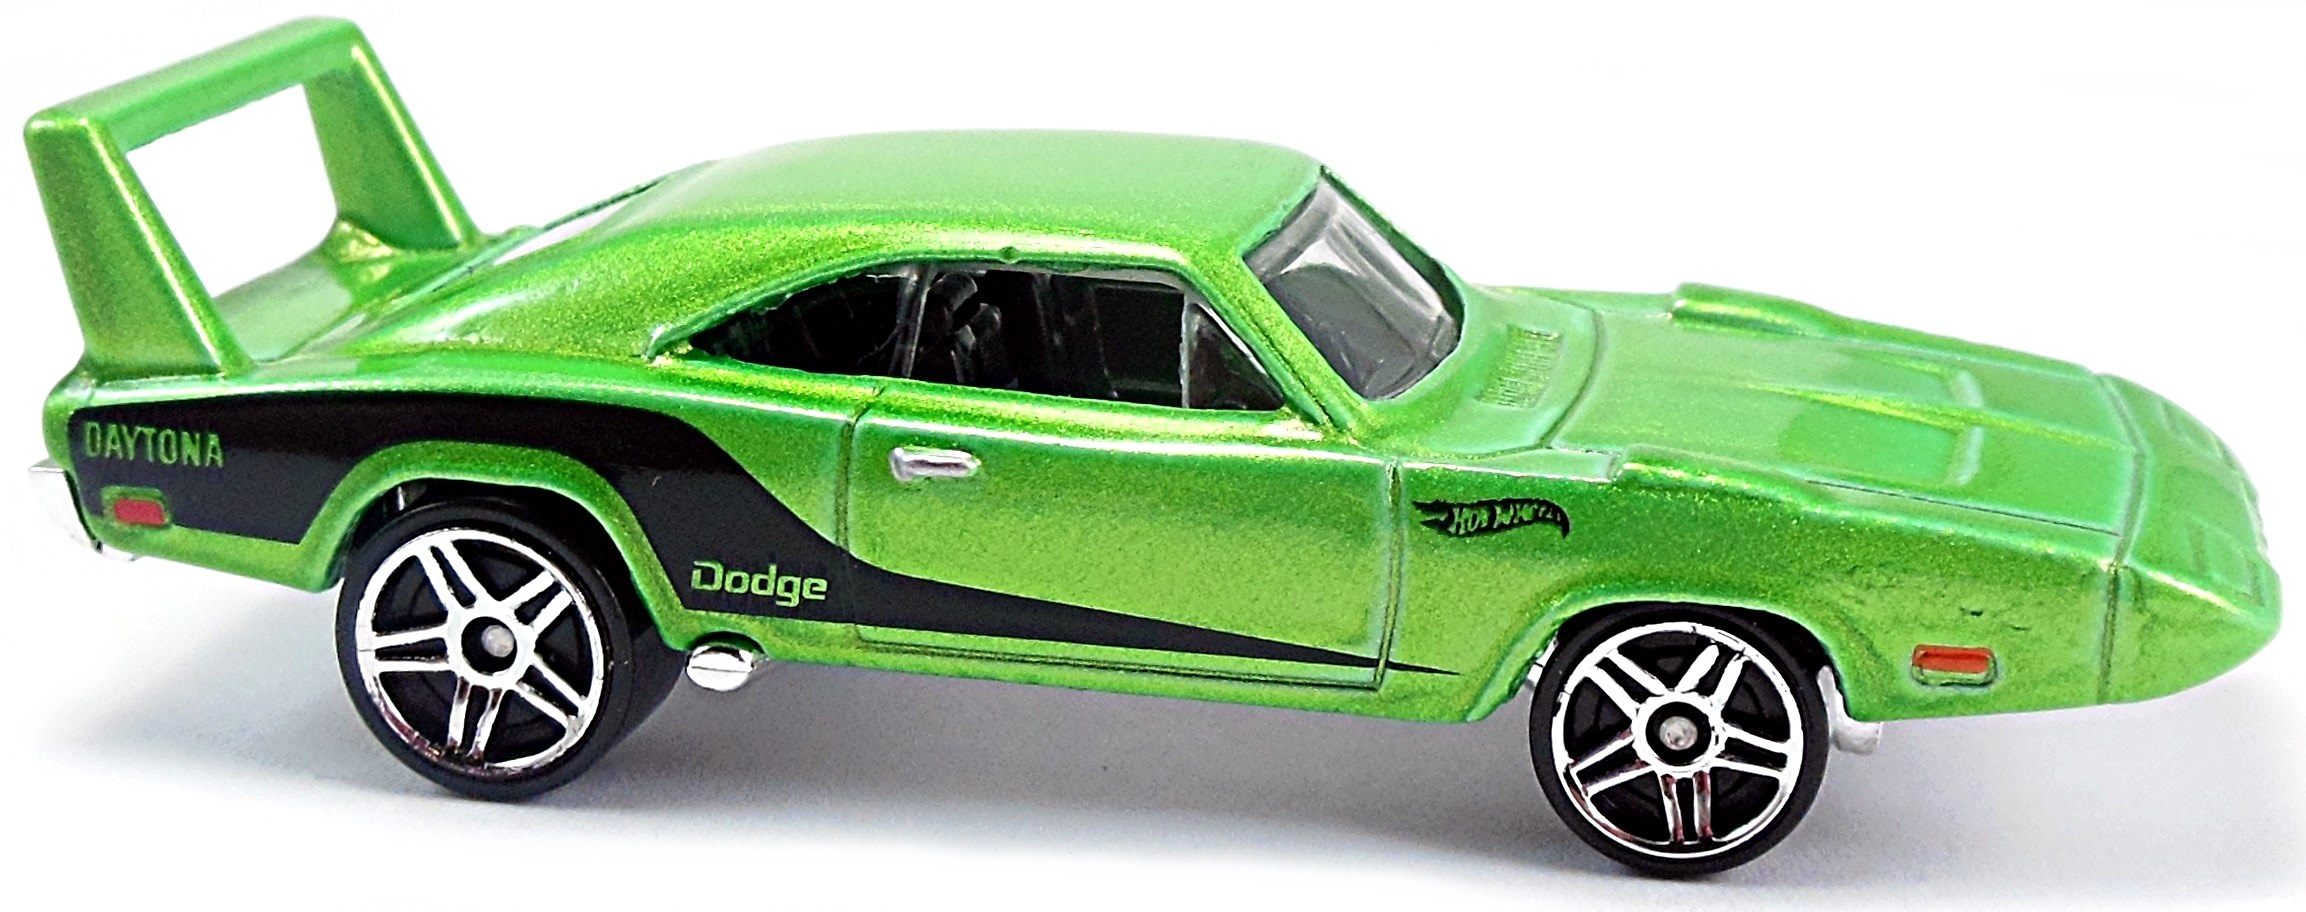 Hot Wheels Dodge Charger Daytona Code Car Green Bo Ta Ny Shop